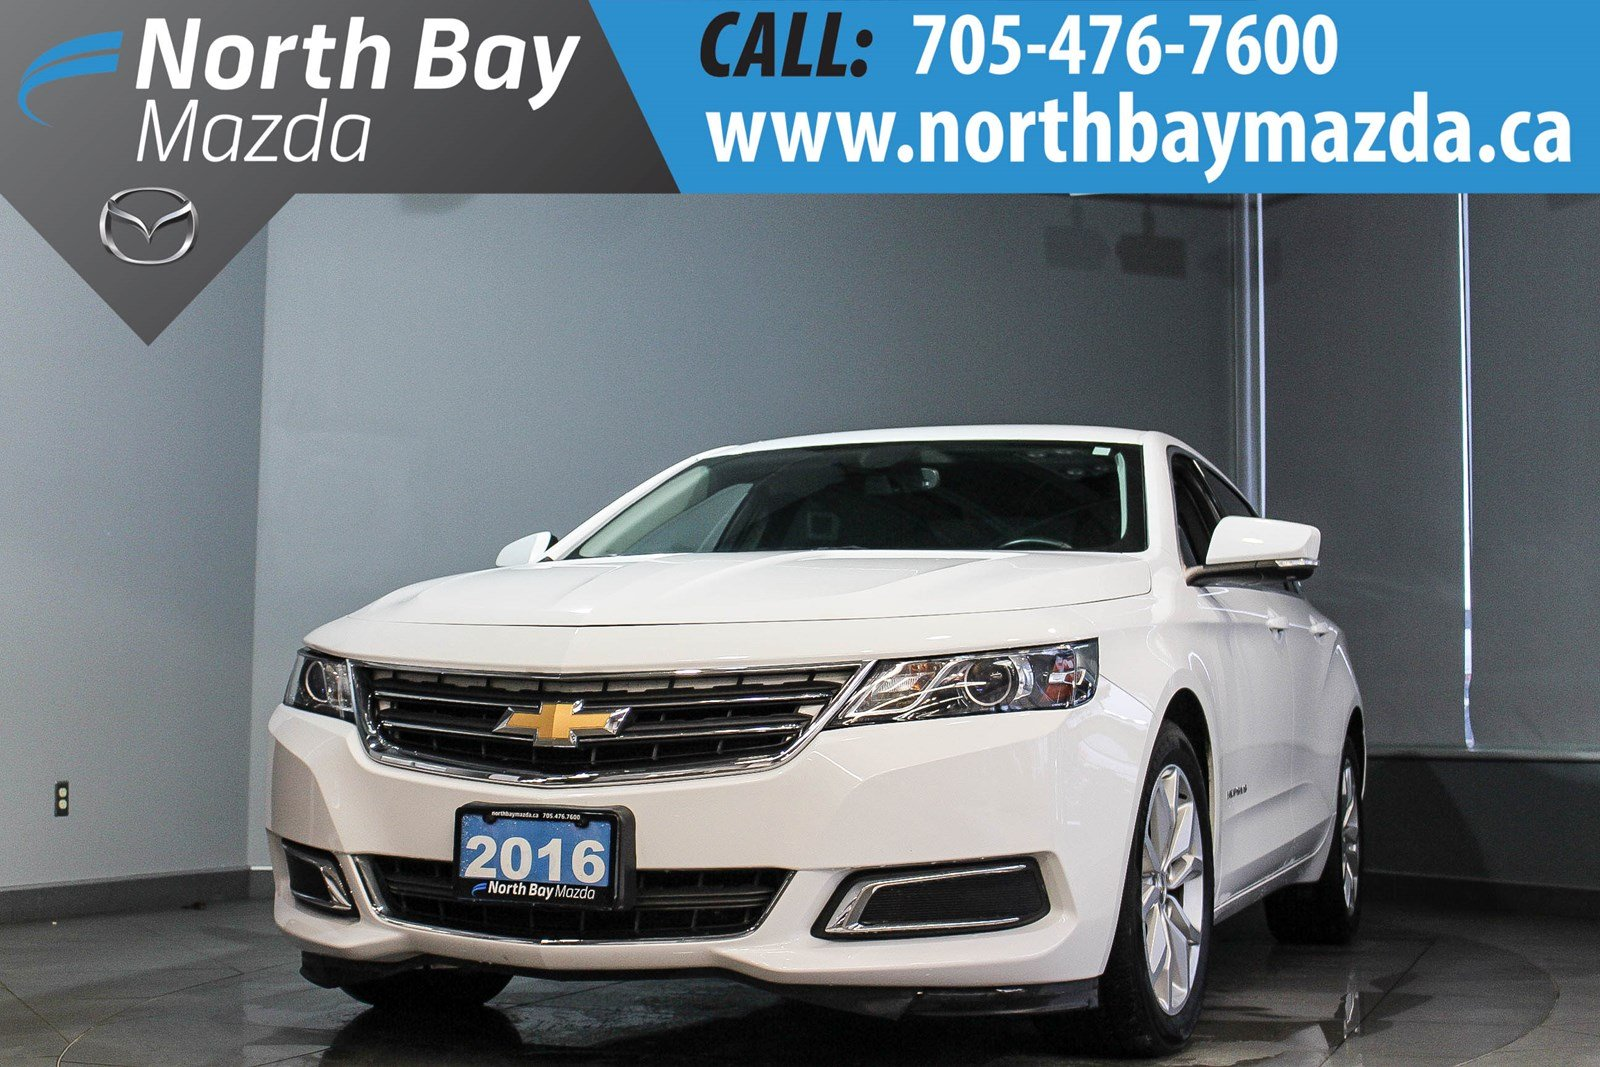 Pre-Owned 2016 Chevrolet Impala LT 6 Cyl with Leatherette, Power Driver Seat